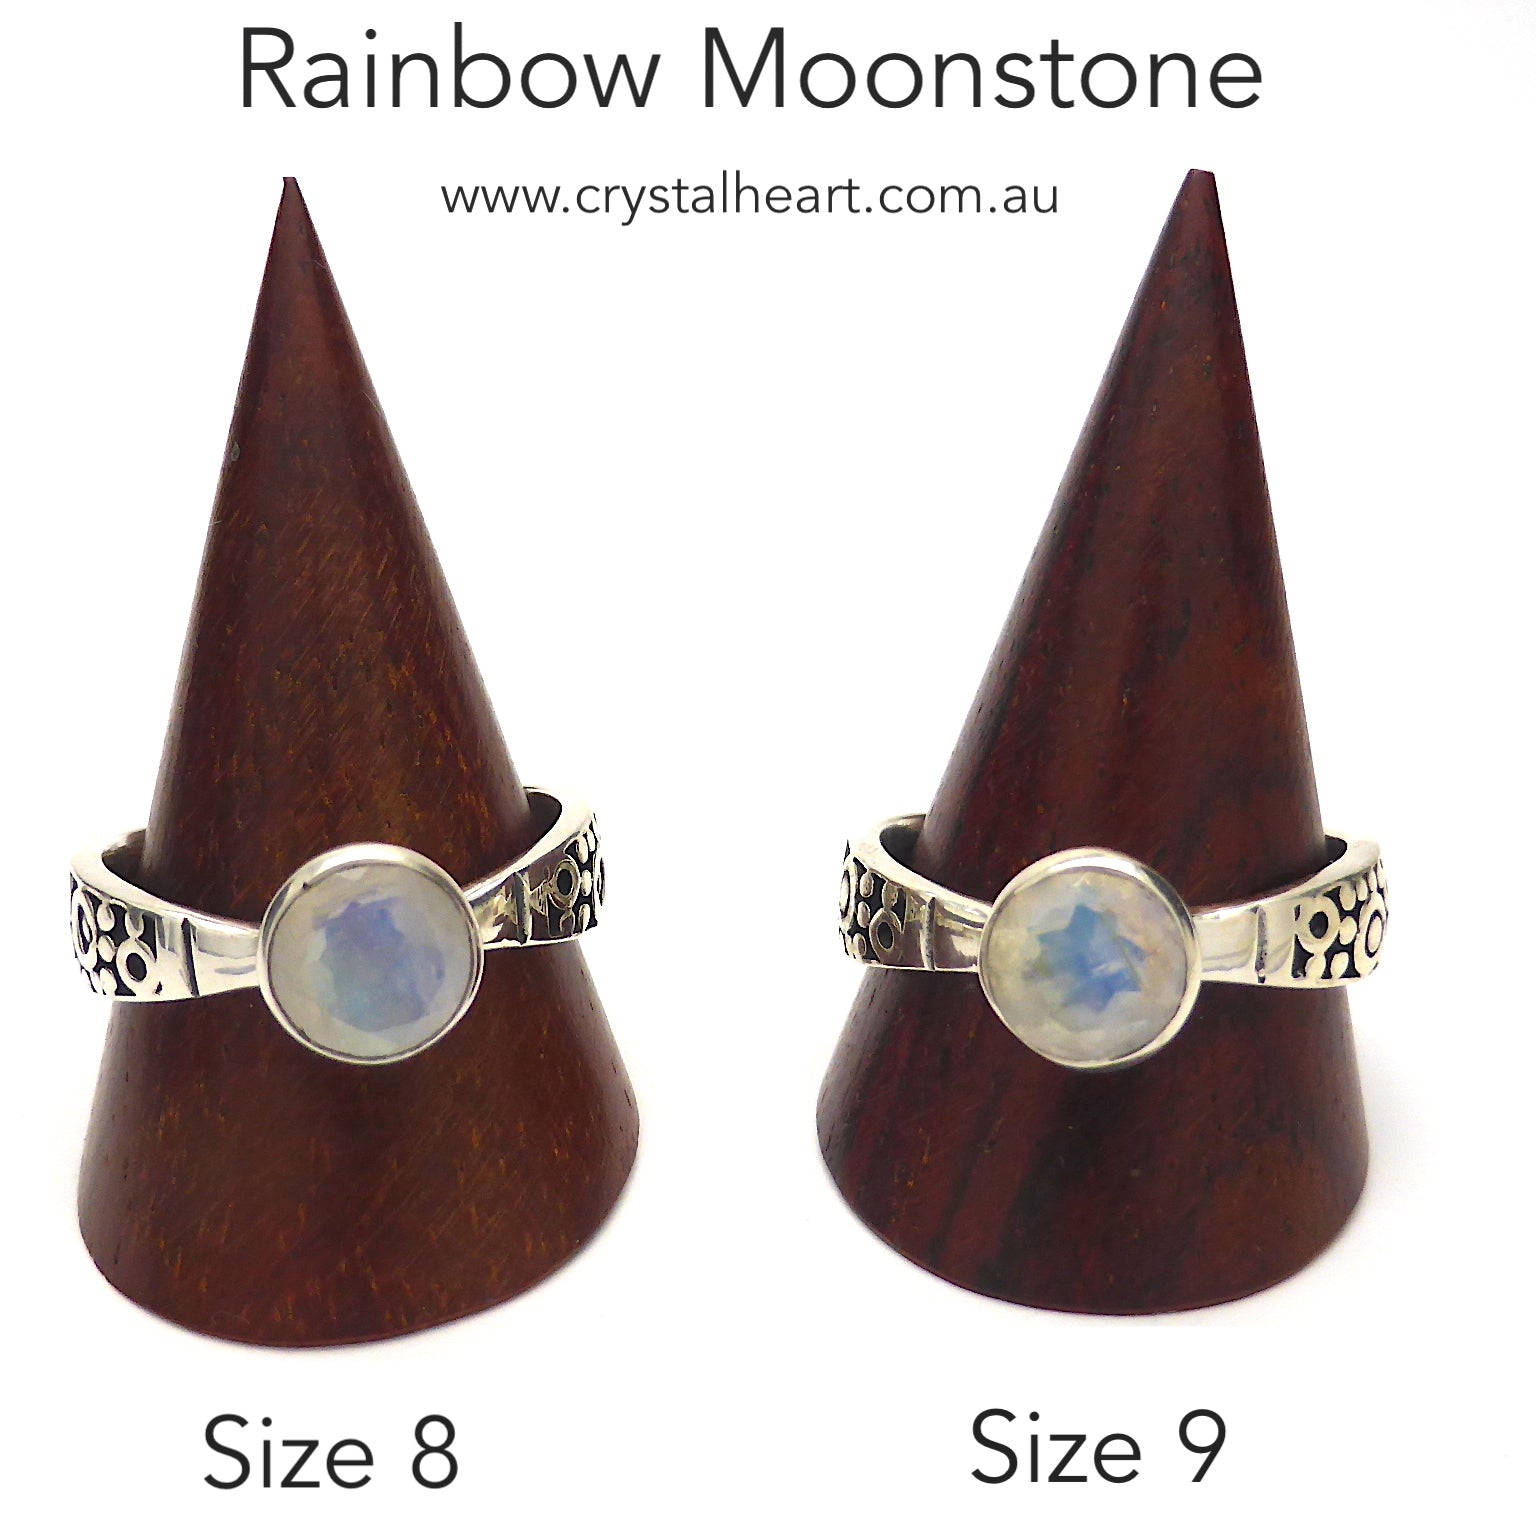 Rainbow Moonstone Ring | 8 mm round Faceted Stone | Good Clarity and Blue Flash | 925 Silver | Elegant design, tapered band with engraving detail | Size 9 or 10 | Genuine Gemstones from  Crystal Heart Australia since 1986